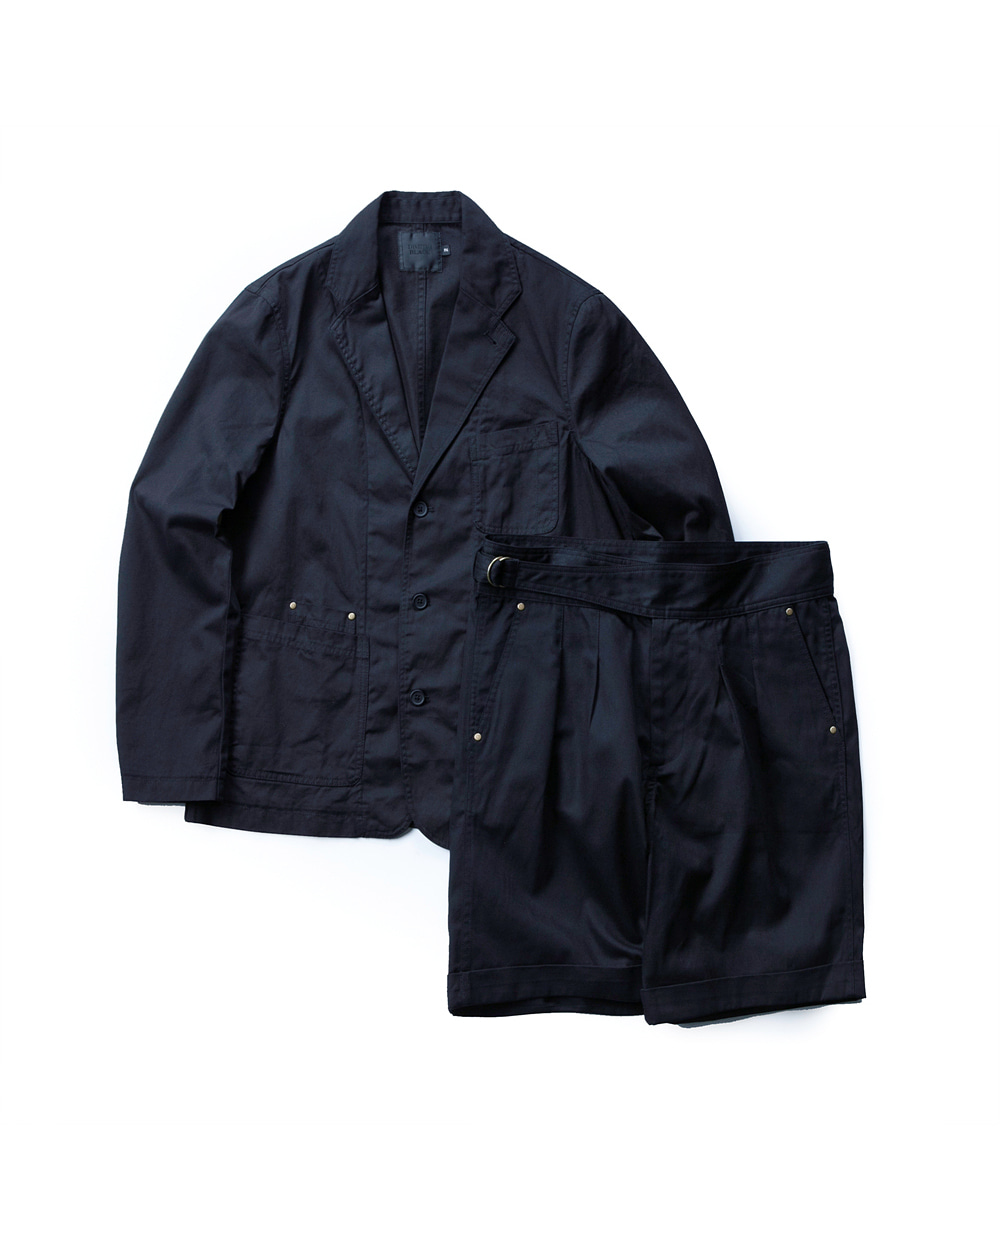 SIDEFIX HALF SET UP NAVY